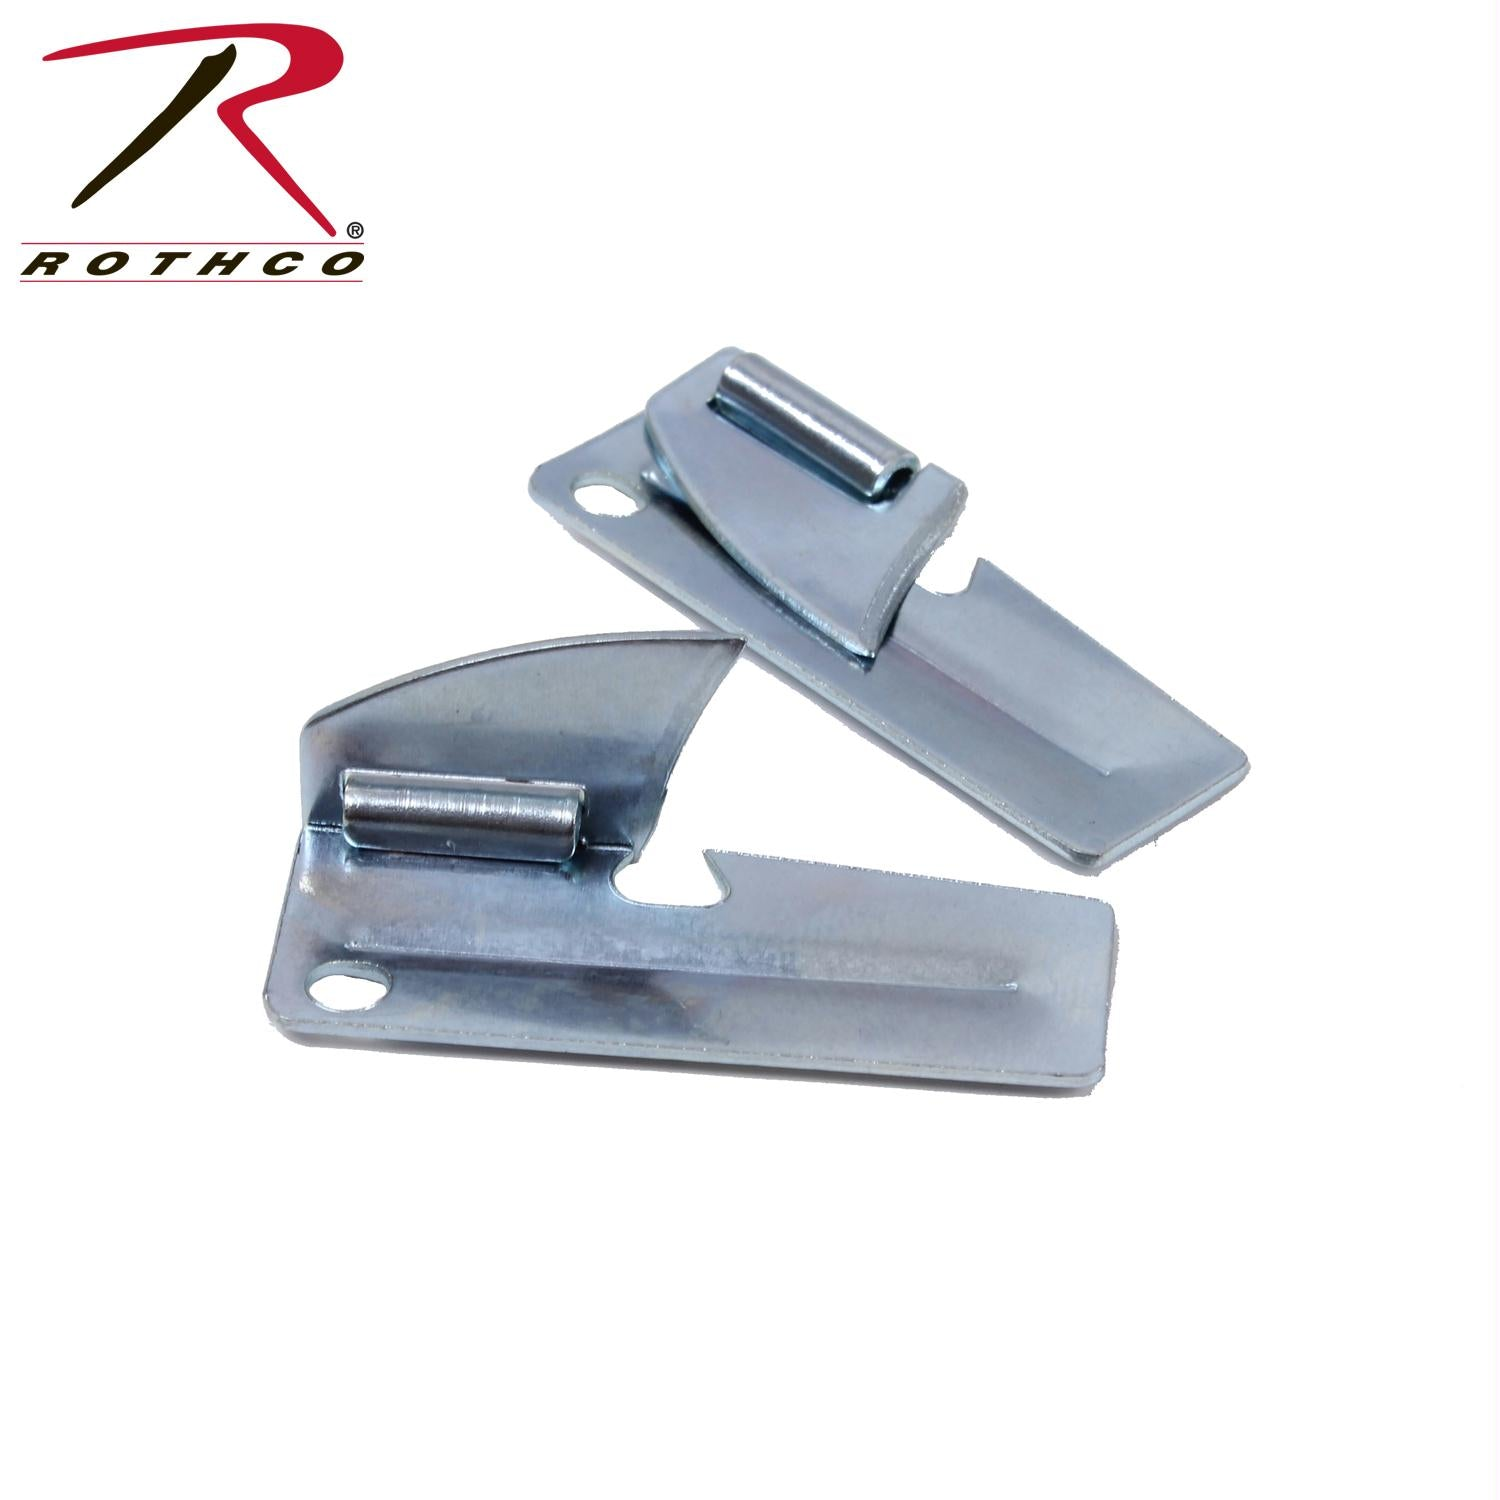 Rothco G.I. P-38 Can Openers - Silver